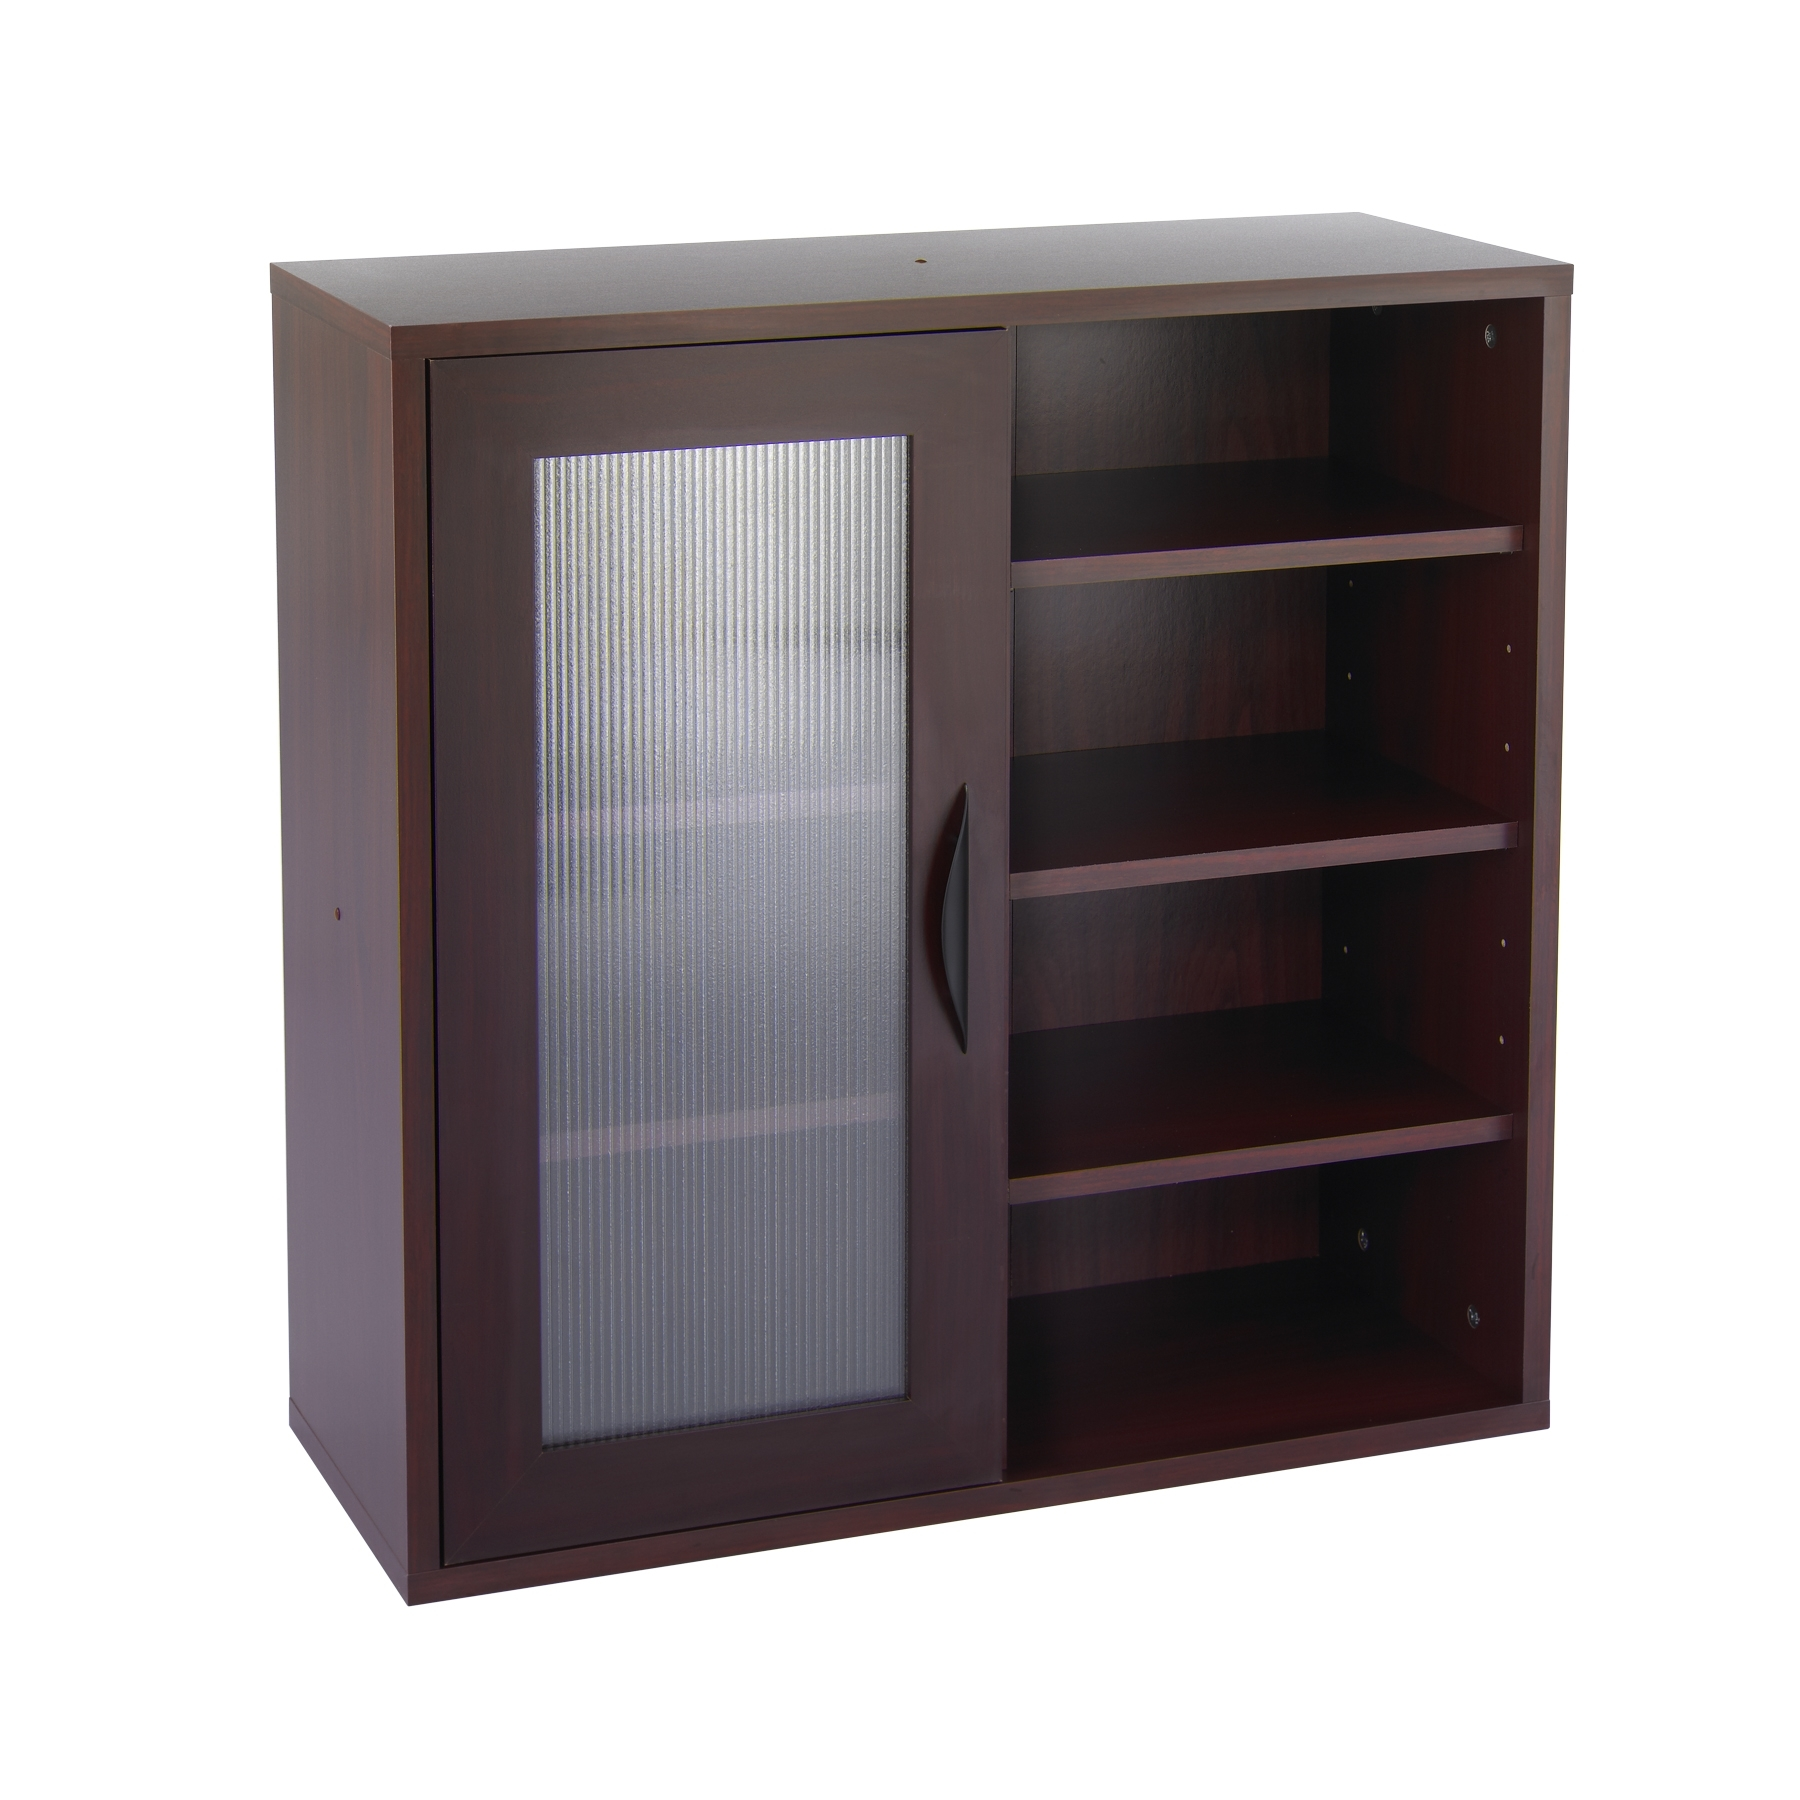 Open Wood Storage Cabinets